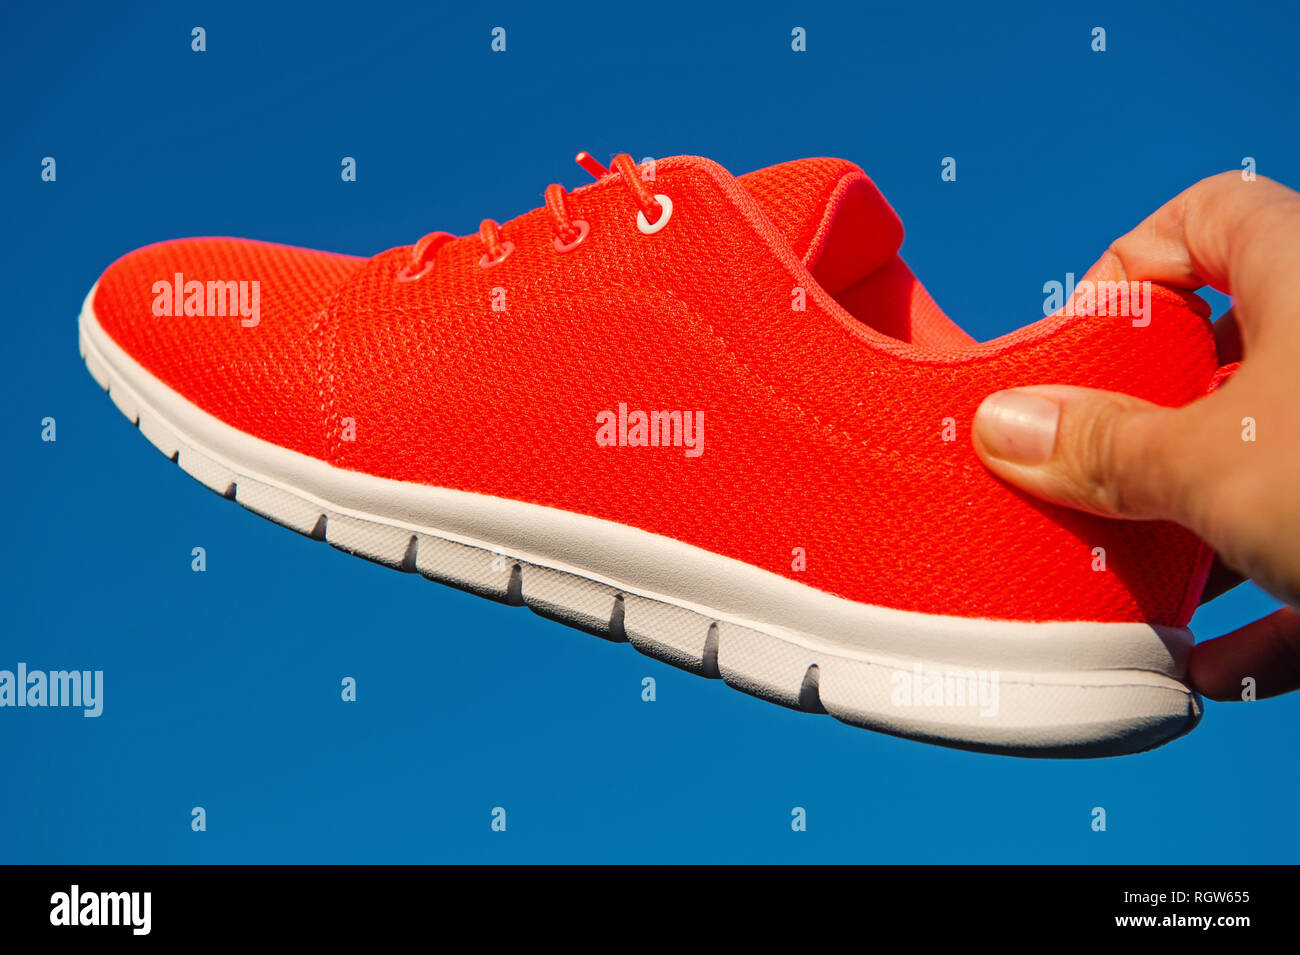 Terrasse Du Port Nike Orange Shoe Photos Orange Shoe Images Alamy